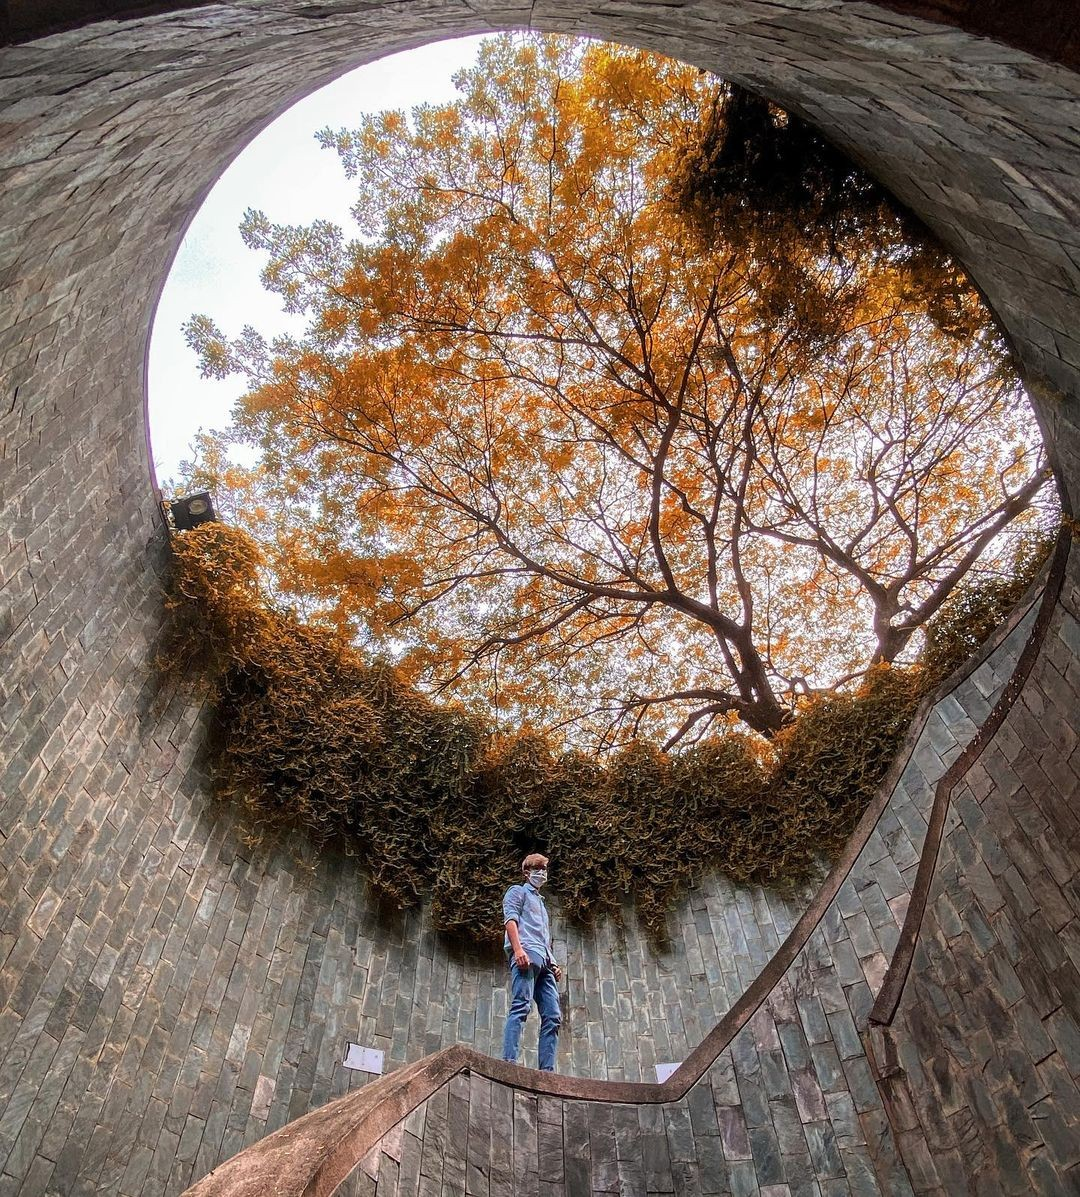 Fort Canning: photography places in Singapore